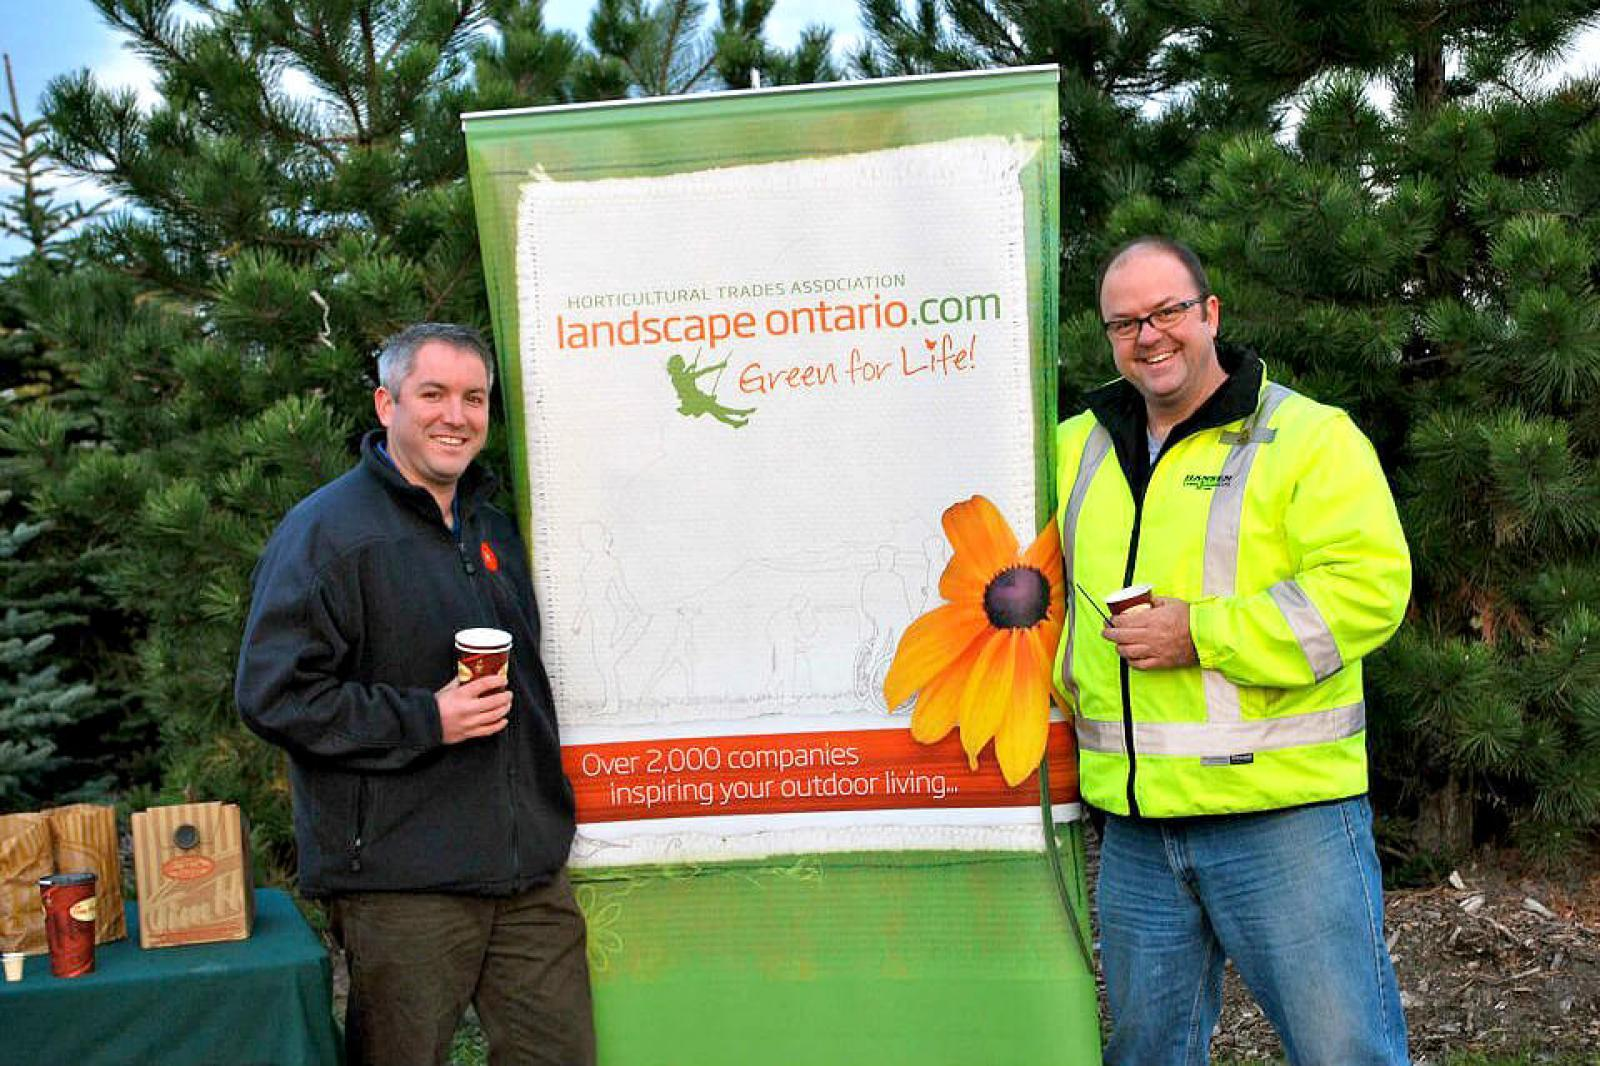 Chris Burns, president of the Ottawa Chapter and Clintar Landscape Management-Ottawa, on left, and Ed Hansen, vice president of the Ottawa Chapter and Hansen Lawn and Garden, take a break after volunteering at the Ottawa Cancer Survivors Park.